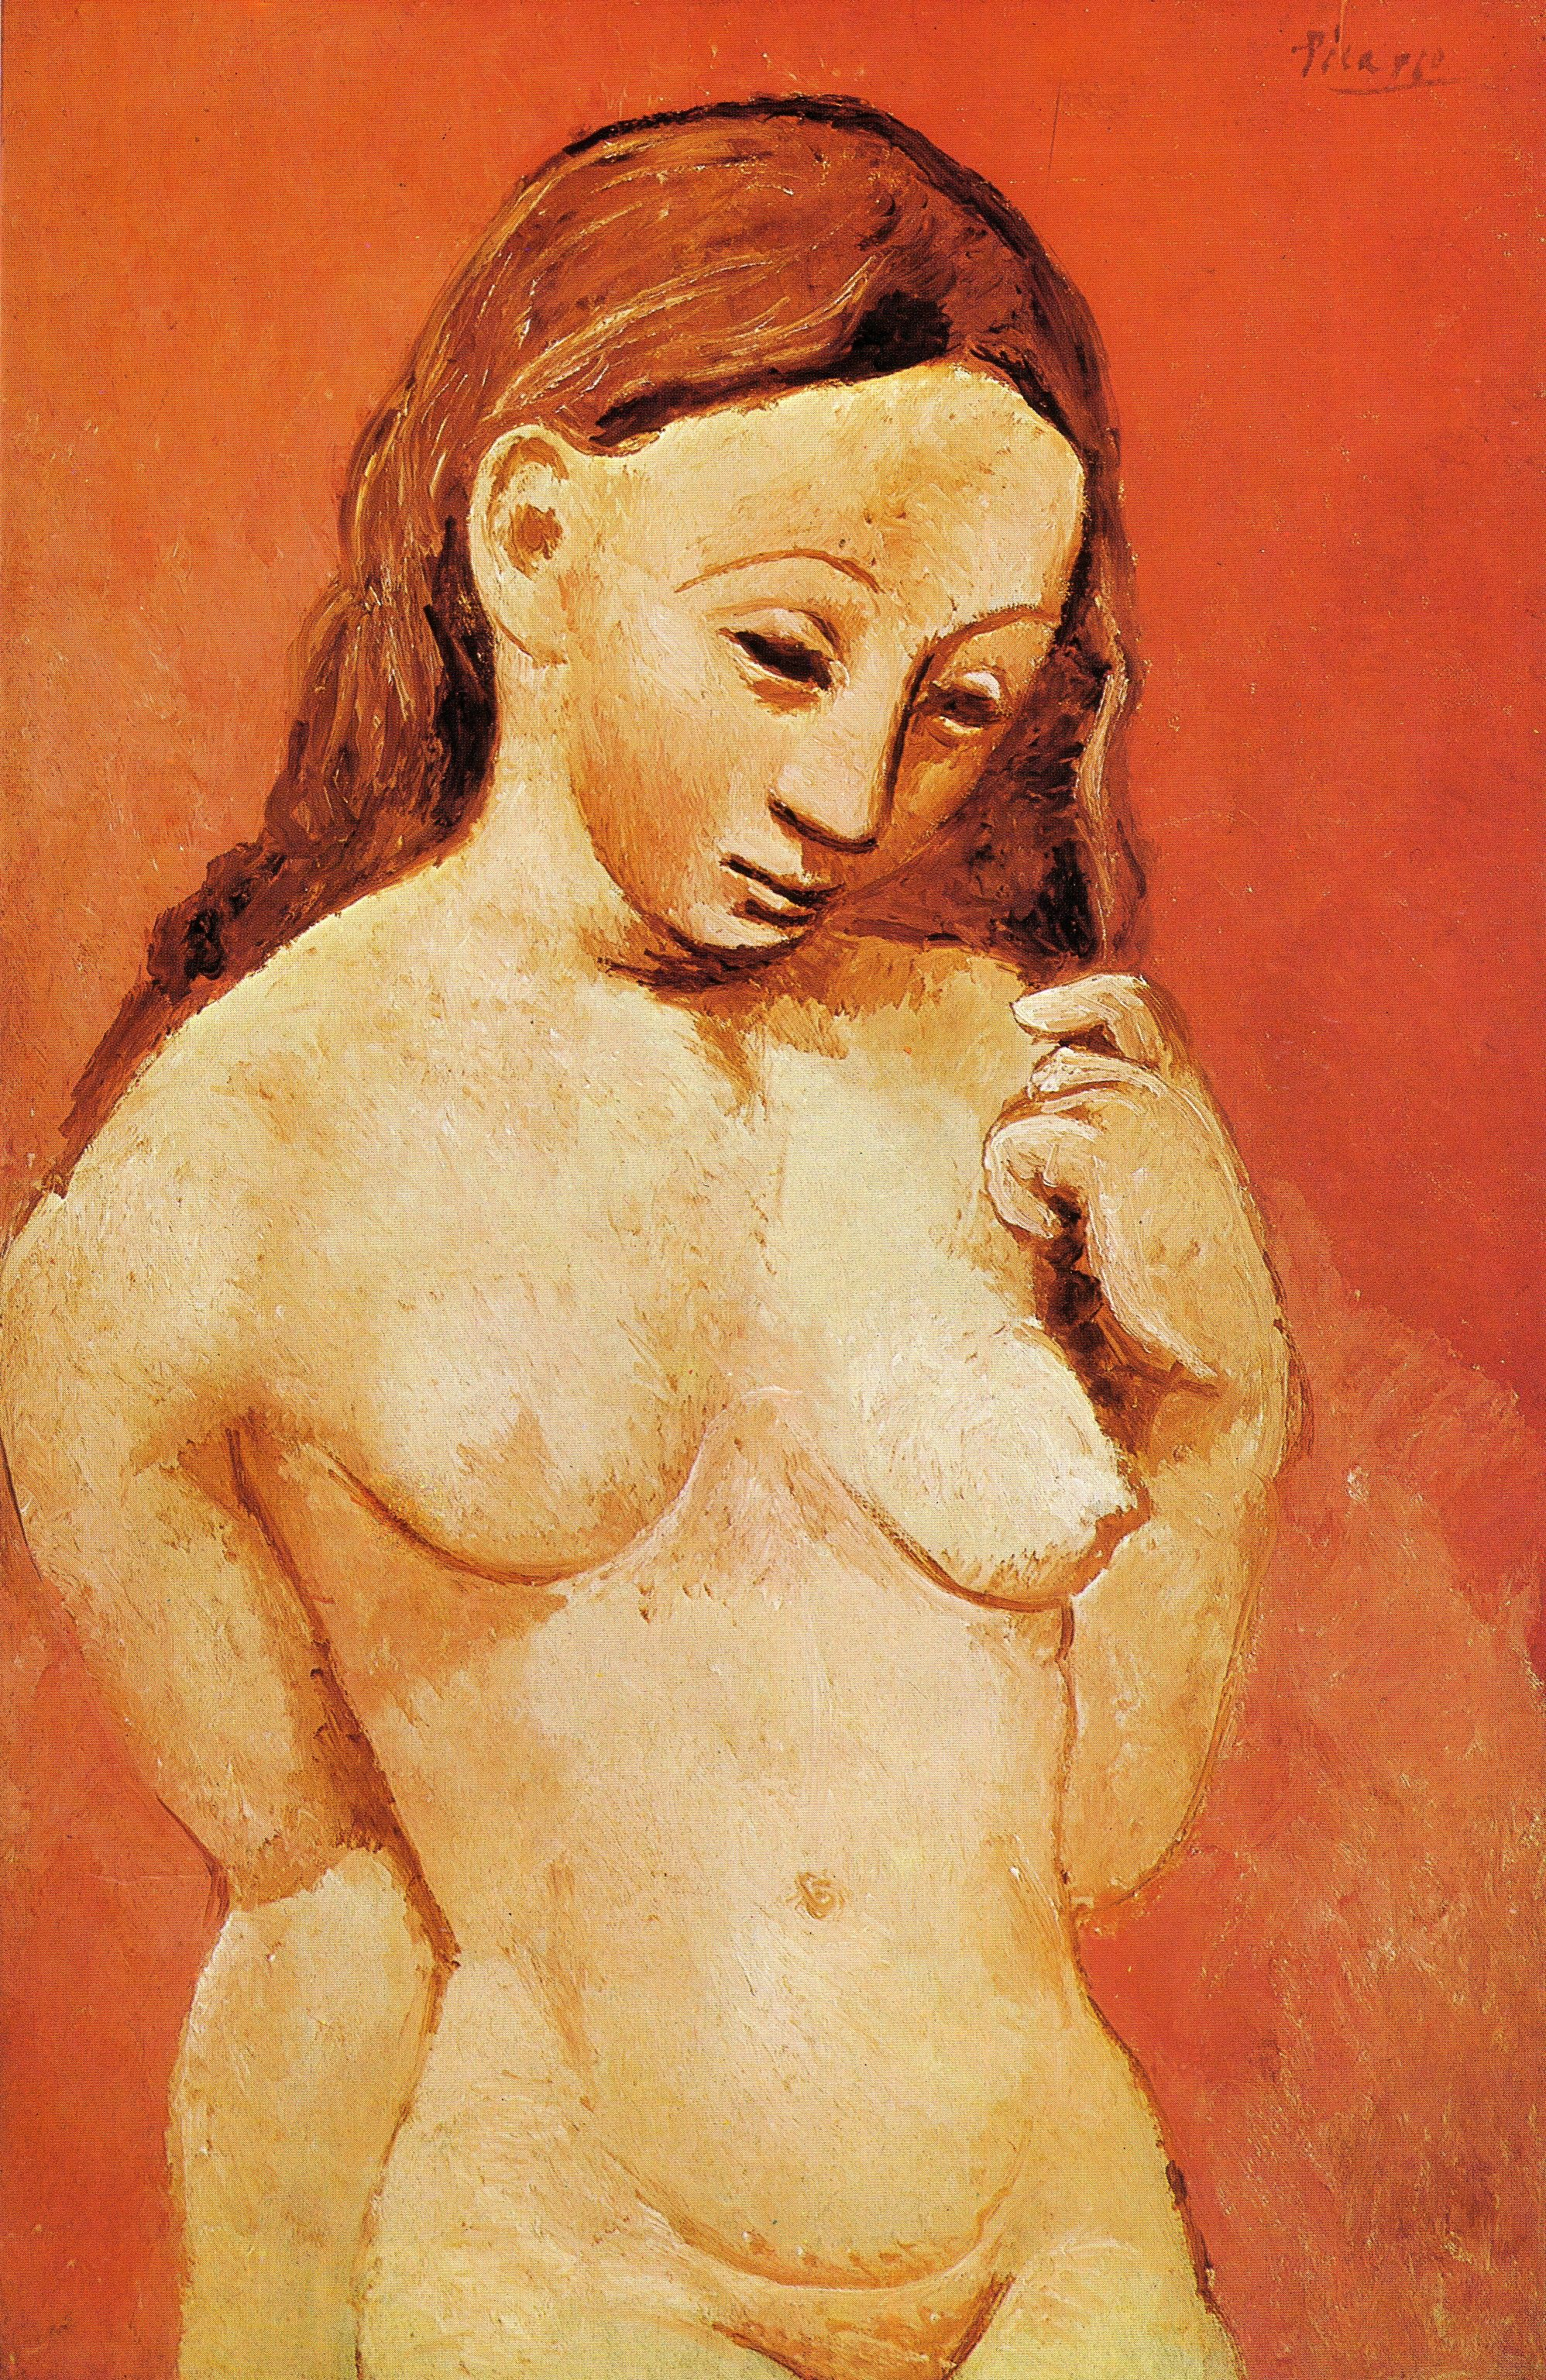 nude against a red background paintings of pablo picasso the art is inside n and world literature e magazine poetry prose essays music gallery blesok skopje literature in translation